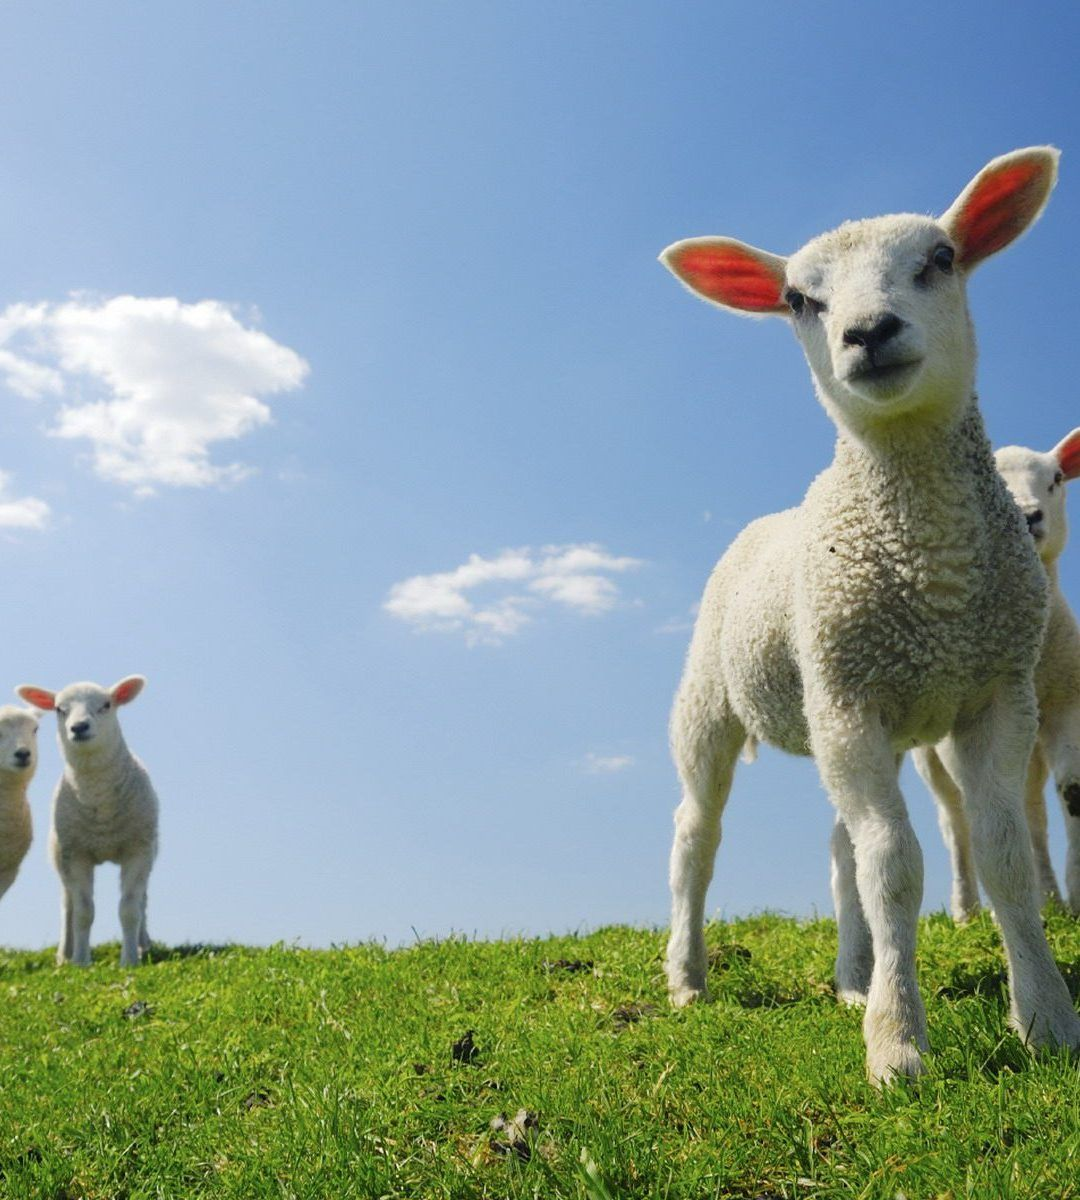 Baby Lamb Wallpapers - Top Free Baby Lamb Backgrounds ...